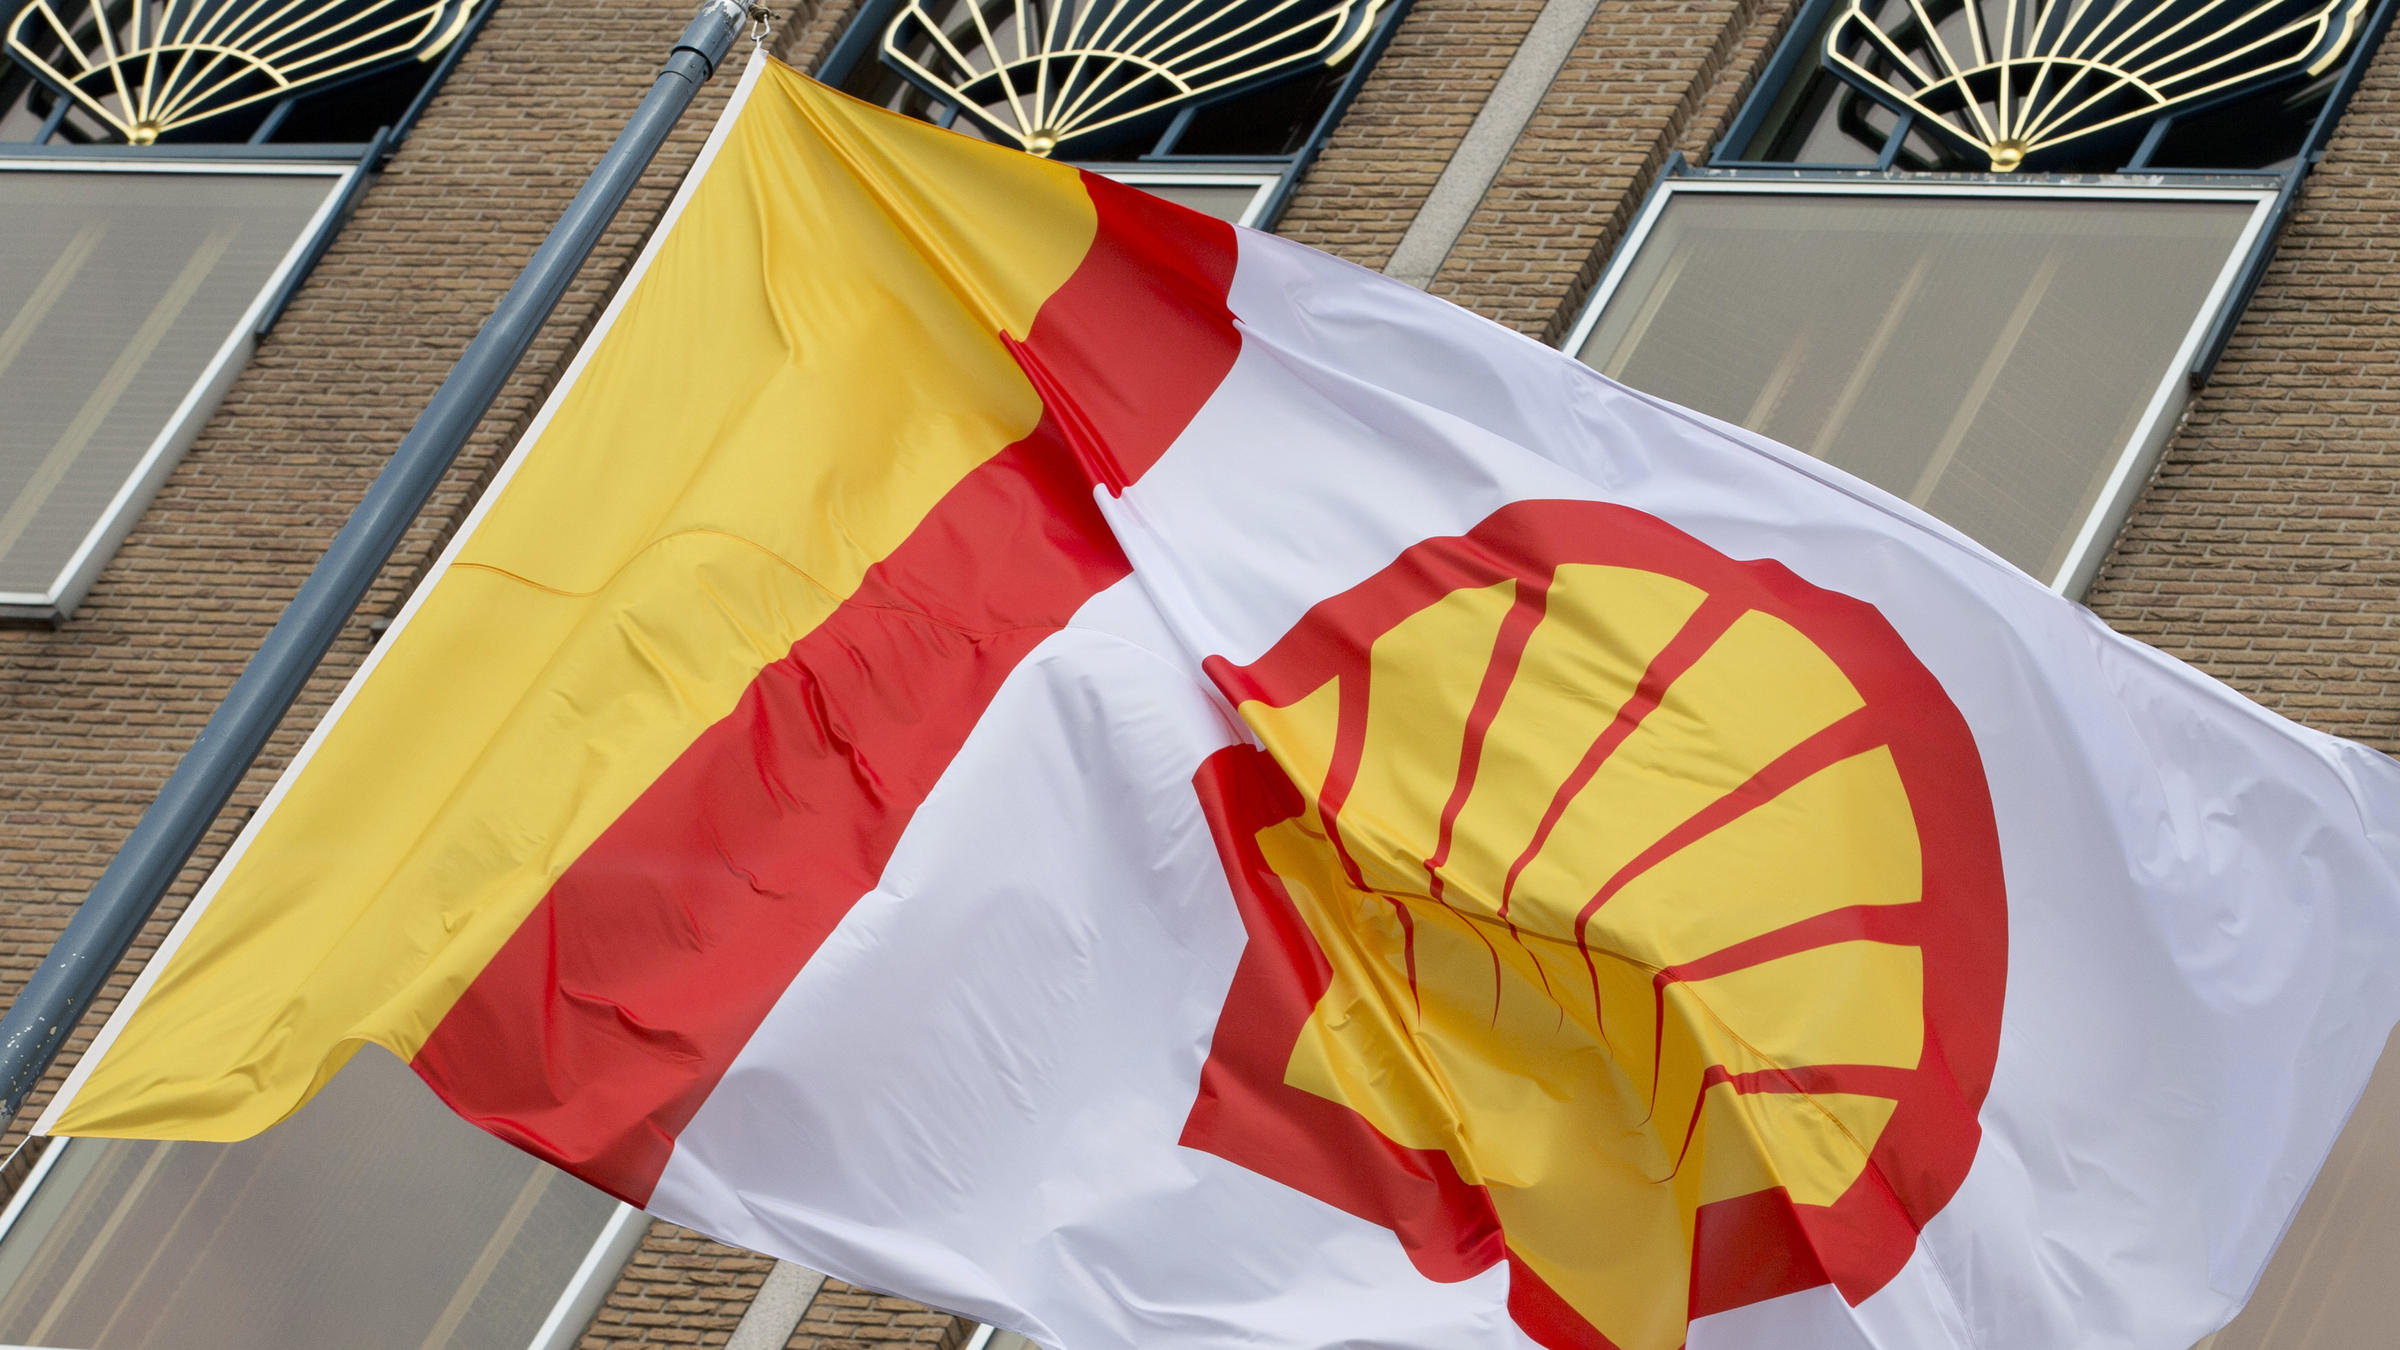 A flag bearing the company logo of Royal Dutch Shell flies outside the energy giant's head office in The Hague Netherlands in 2014